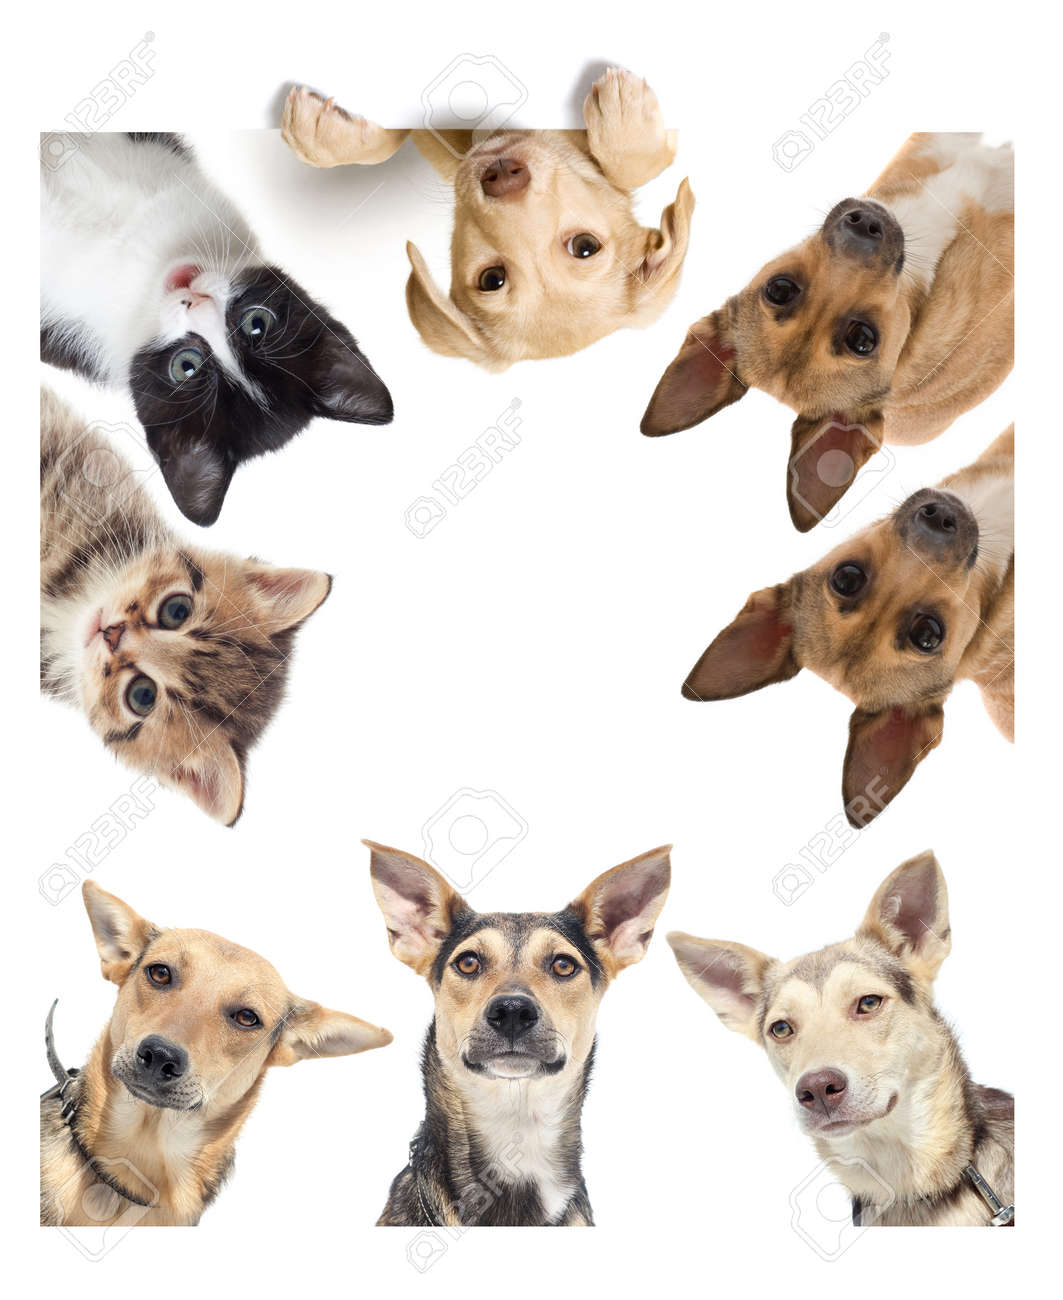 funny dog watching - 50594281